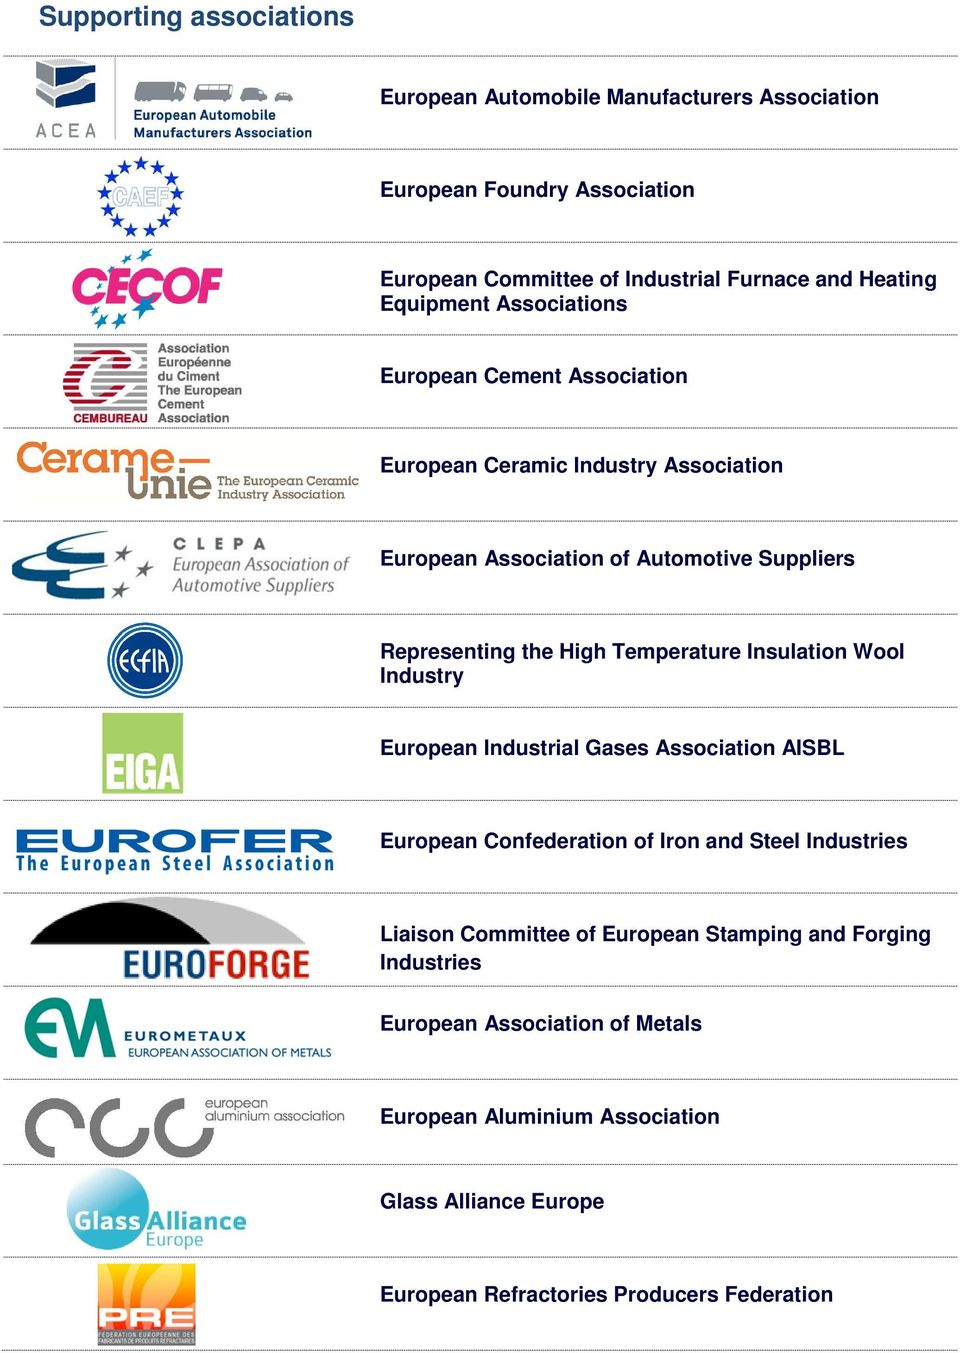 Temperature Insulation Wool Industry European Industrial Gases Association AISBL European Confederation of Iron and Steel Industries Liaison Committee of